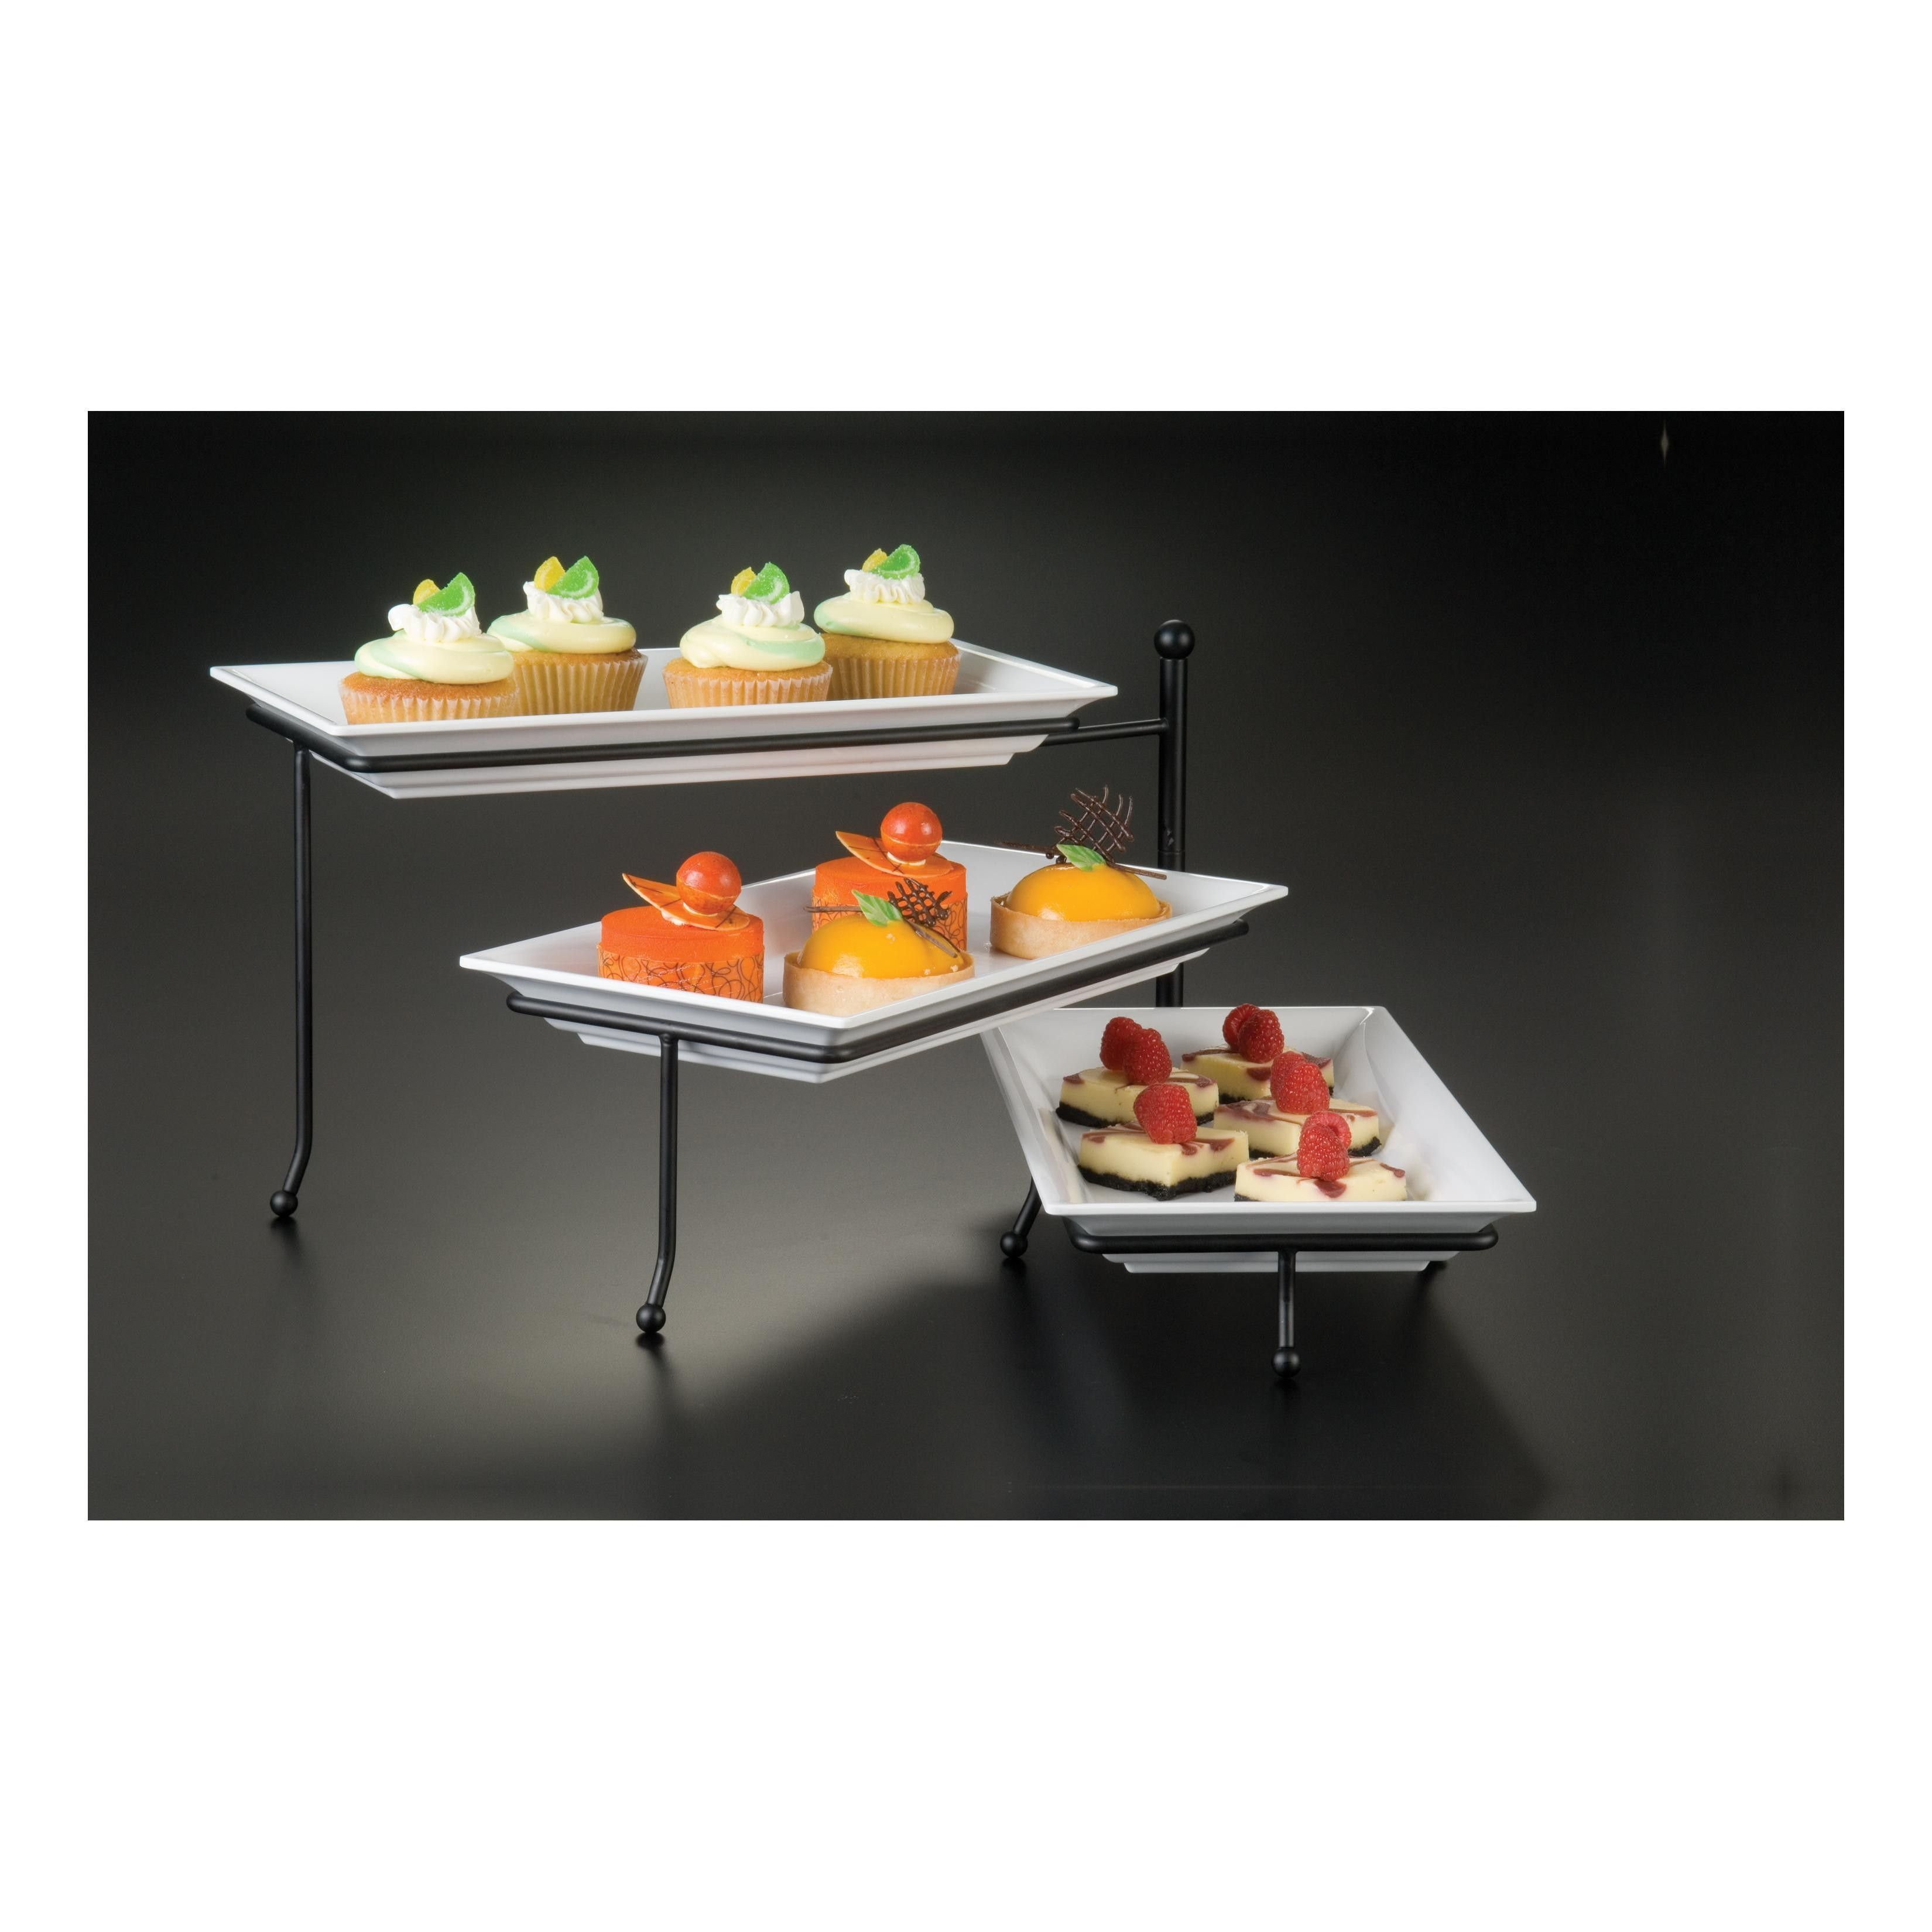 3 Tier Steel Display Stand W Platters Upscale Your Catering Or Buffet Service With The 3 Tier Wrought Iron Foldable Display Stand From American Metalcraft T